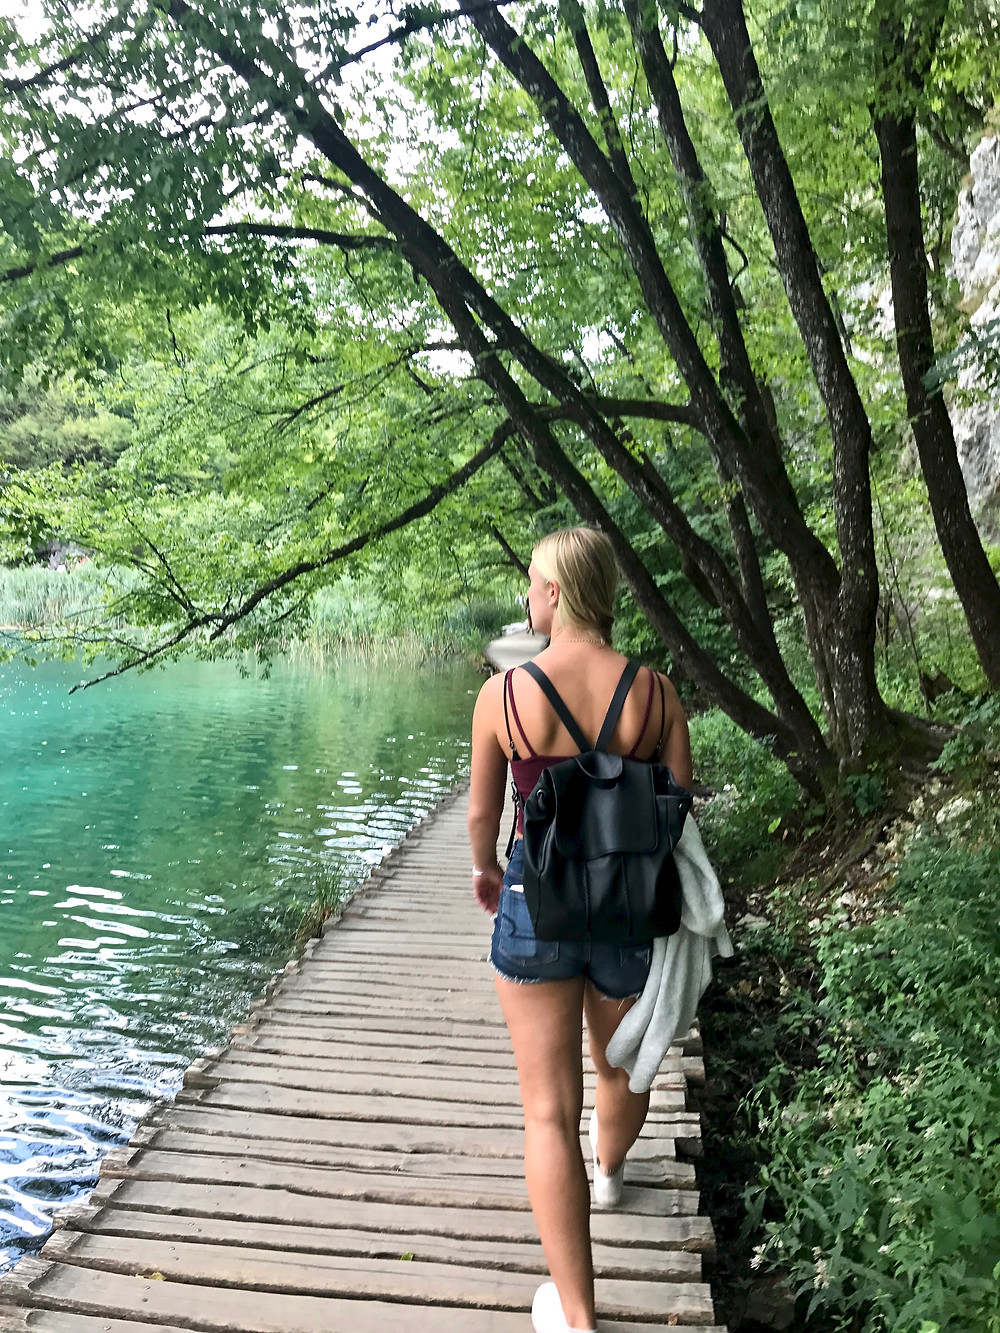 walking the boardwalks in the lower lakes of Plitvice